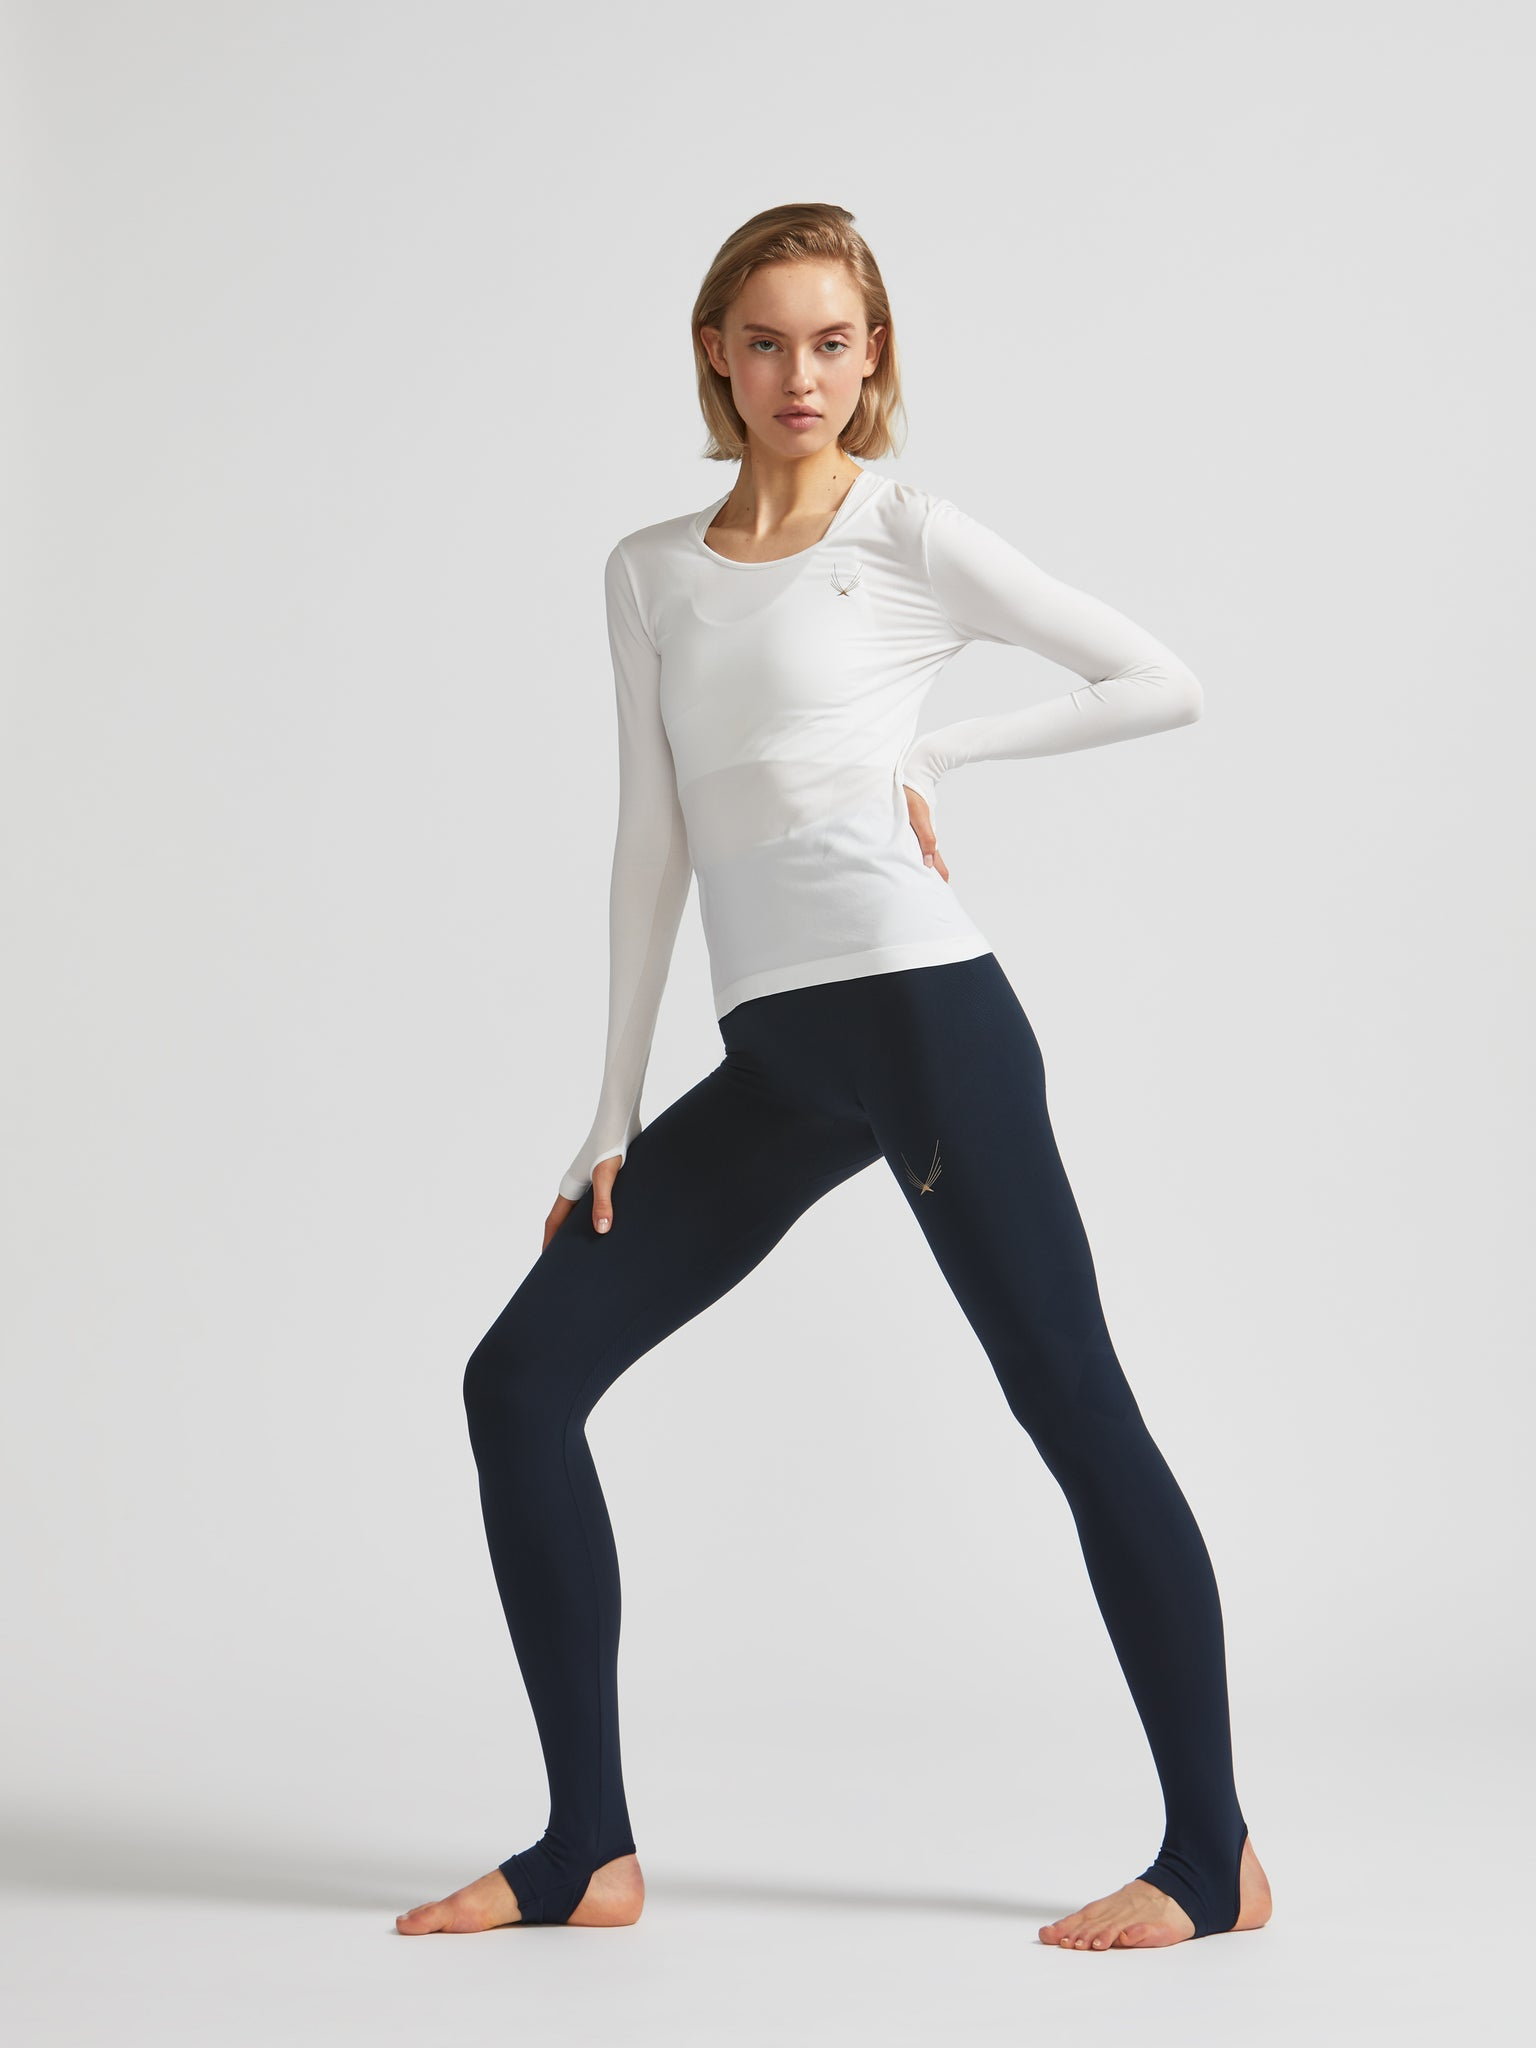 lucas hugh technical knit long sleeve top in white made from quick drying fabric, ventilation panels and thumb holes. Ideal for running, yoga or pilates